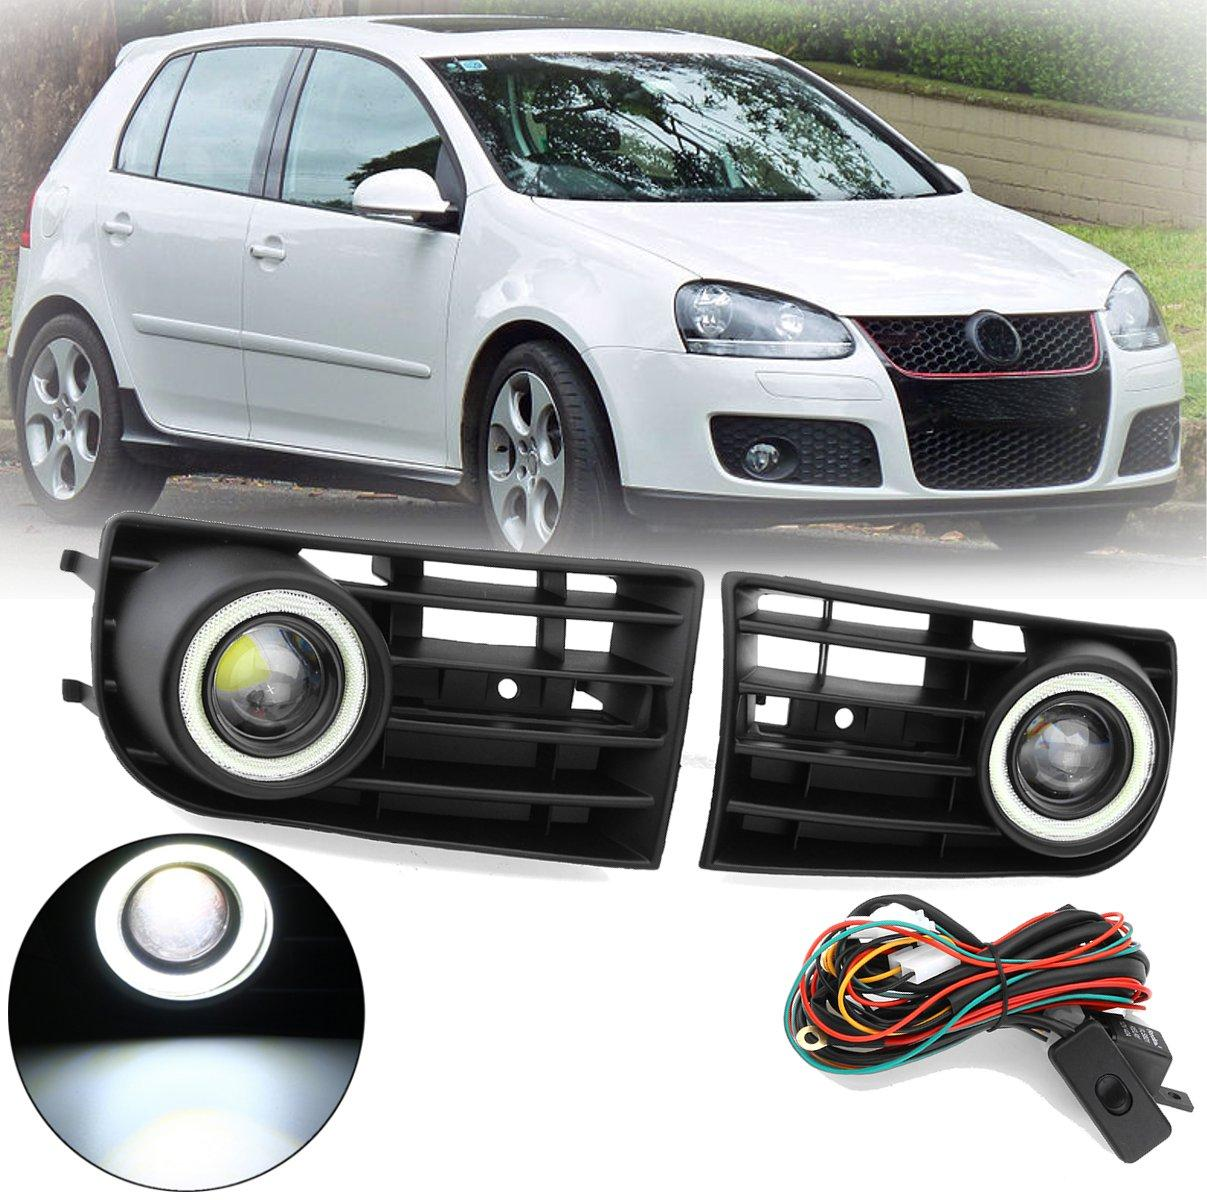 Pair Car Fog Lights Grille LED Halo Angel Eye Light Wiht Wring Kits For VW Golf 5 MK5 2003-2009